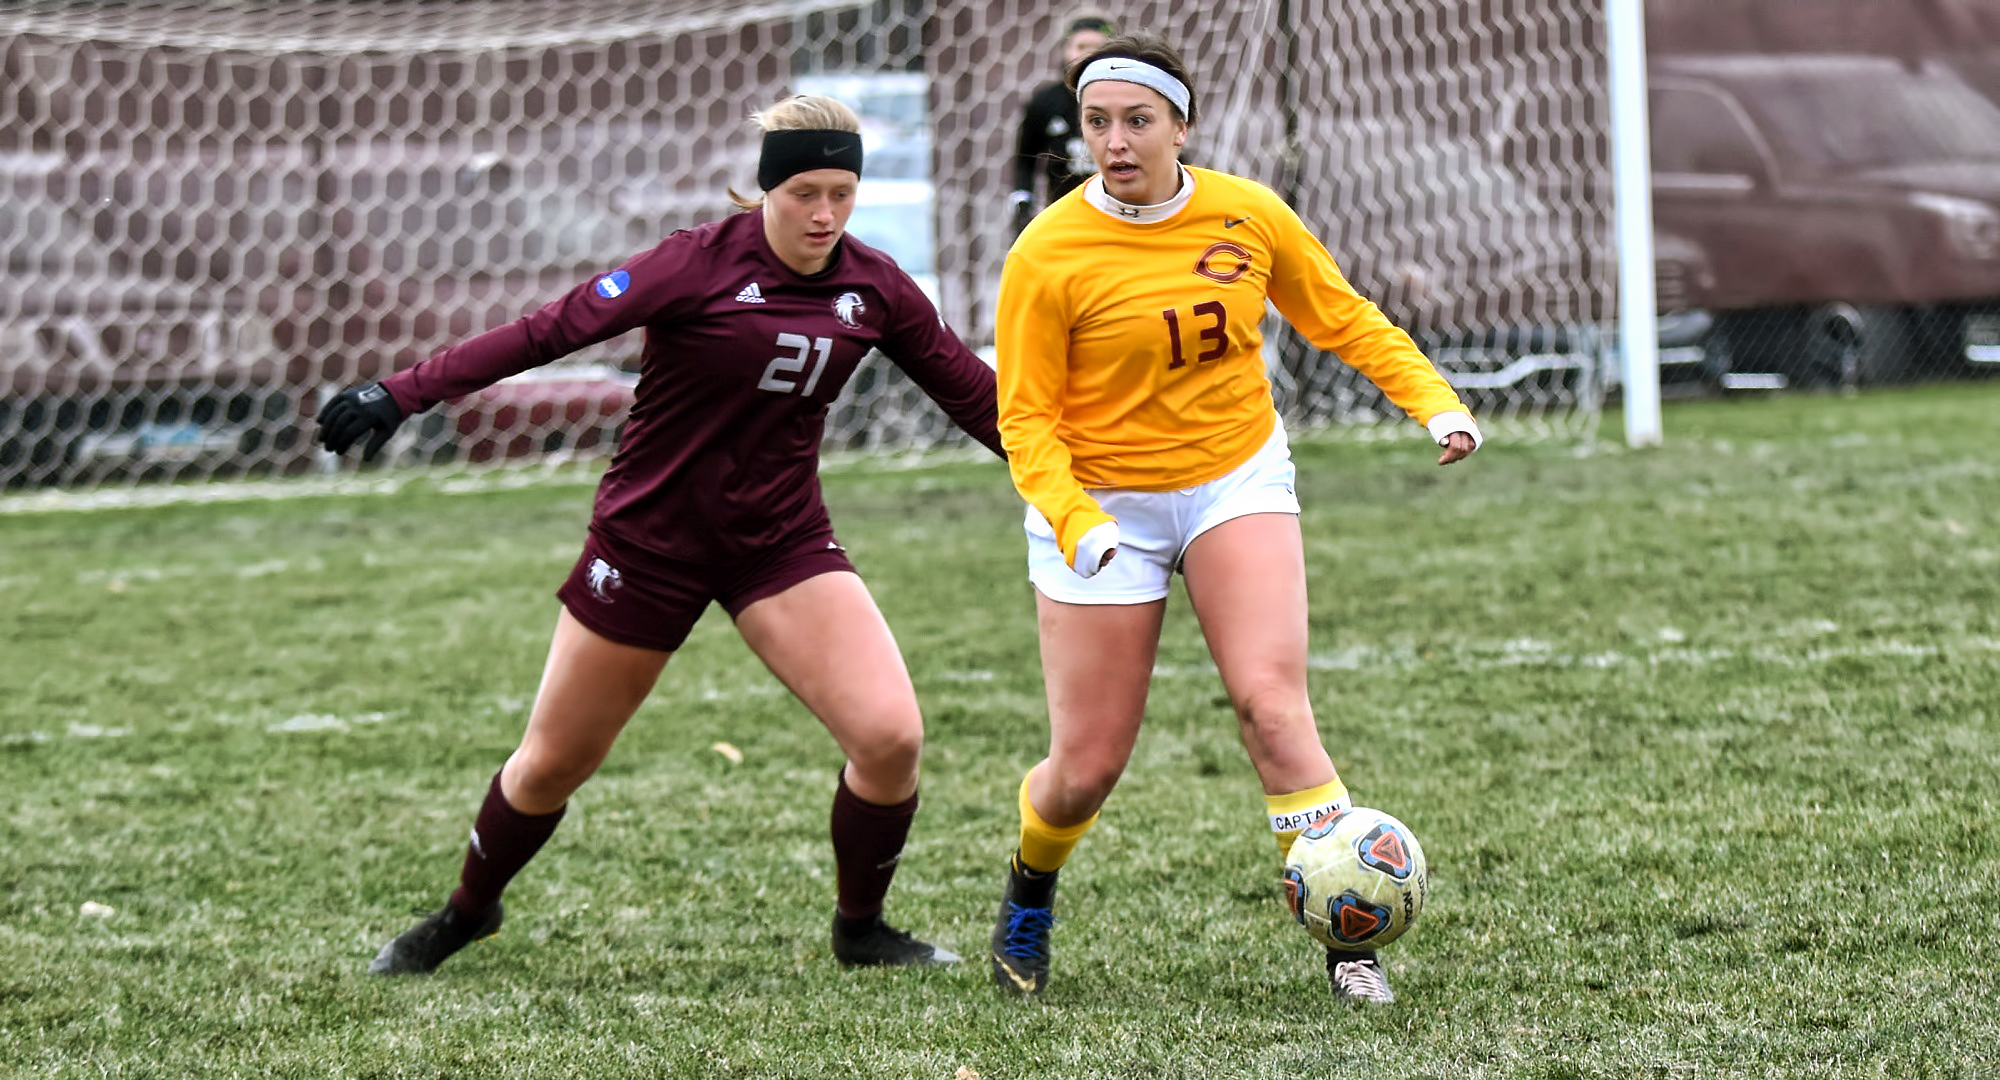 Senior Kalli Baarstad keeps the ball away from an Augsburg defender during the second half of the Cobbers' game with the Auggies. Baarstad led CC with four shots.